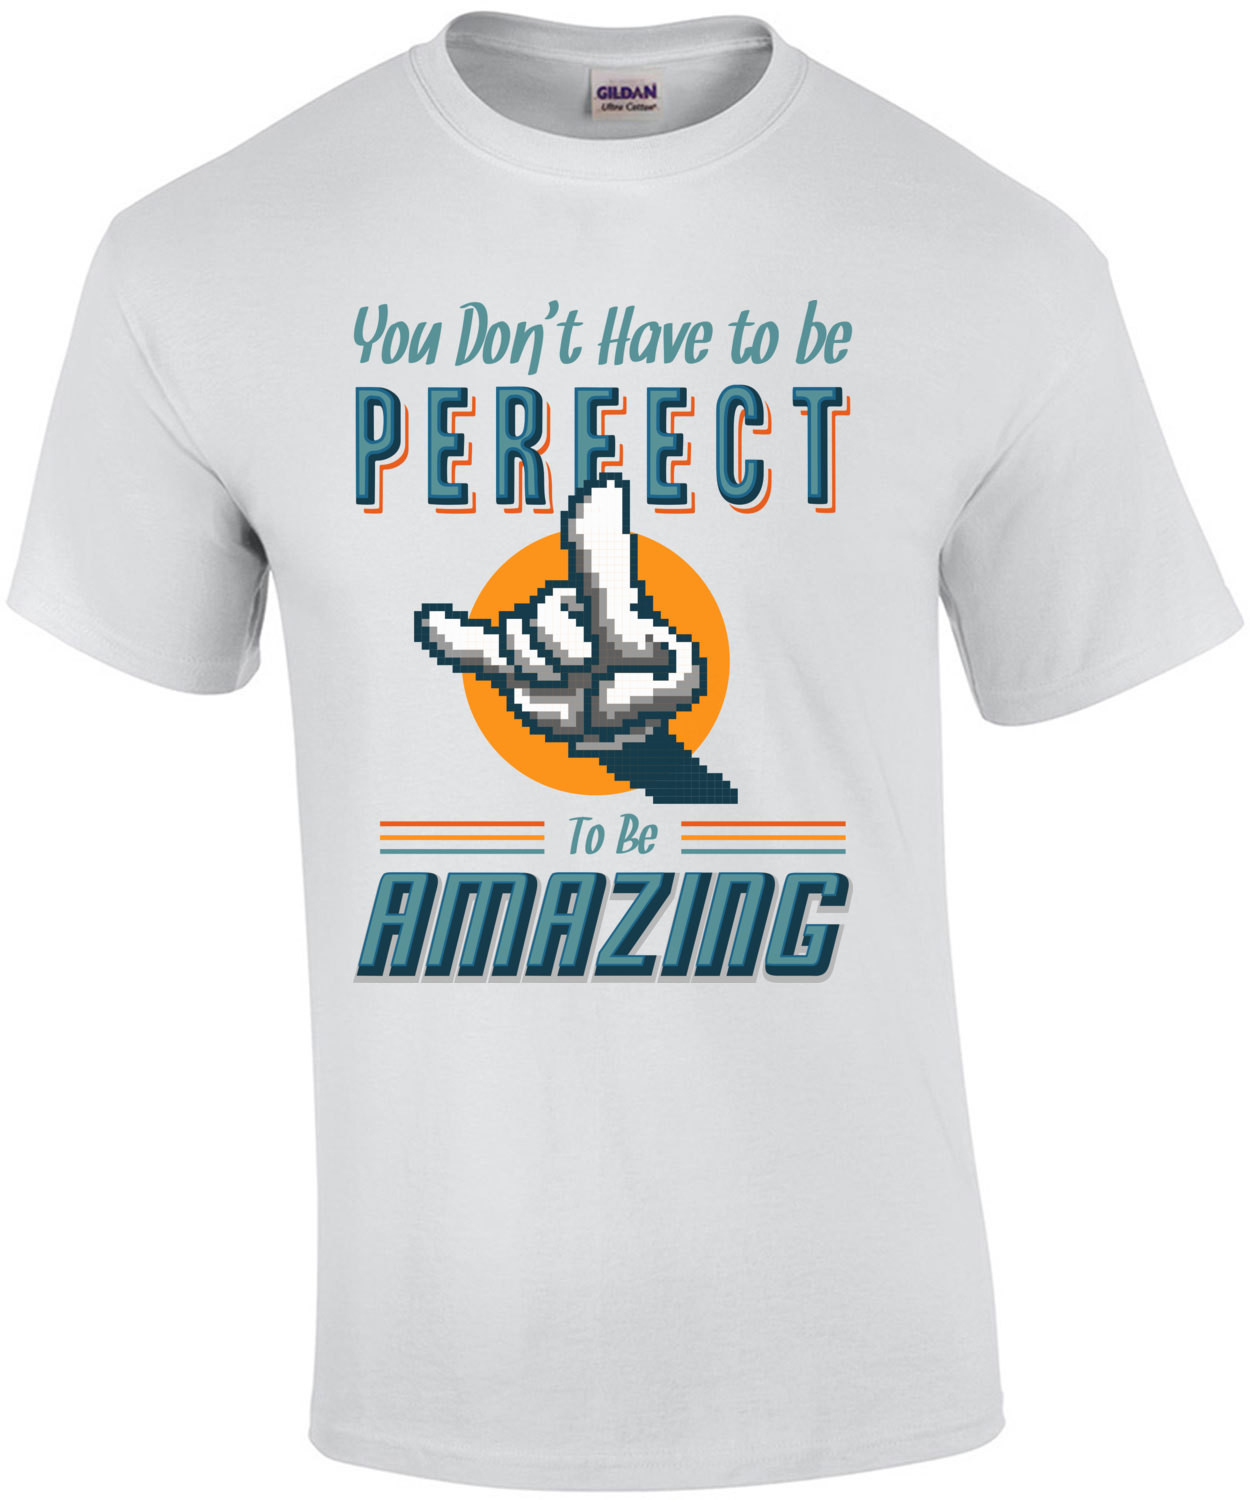 You Dont Have To Be Perfect To Be Amazing T-Shirt